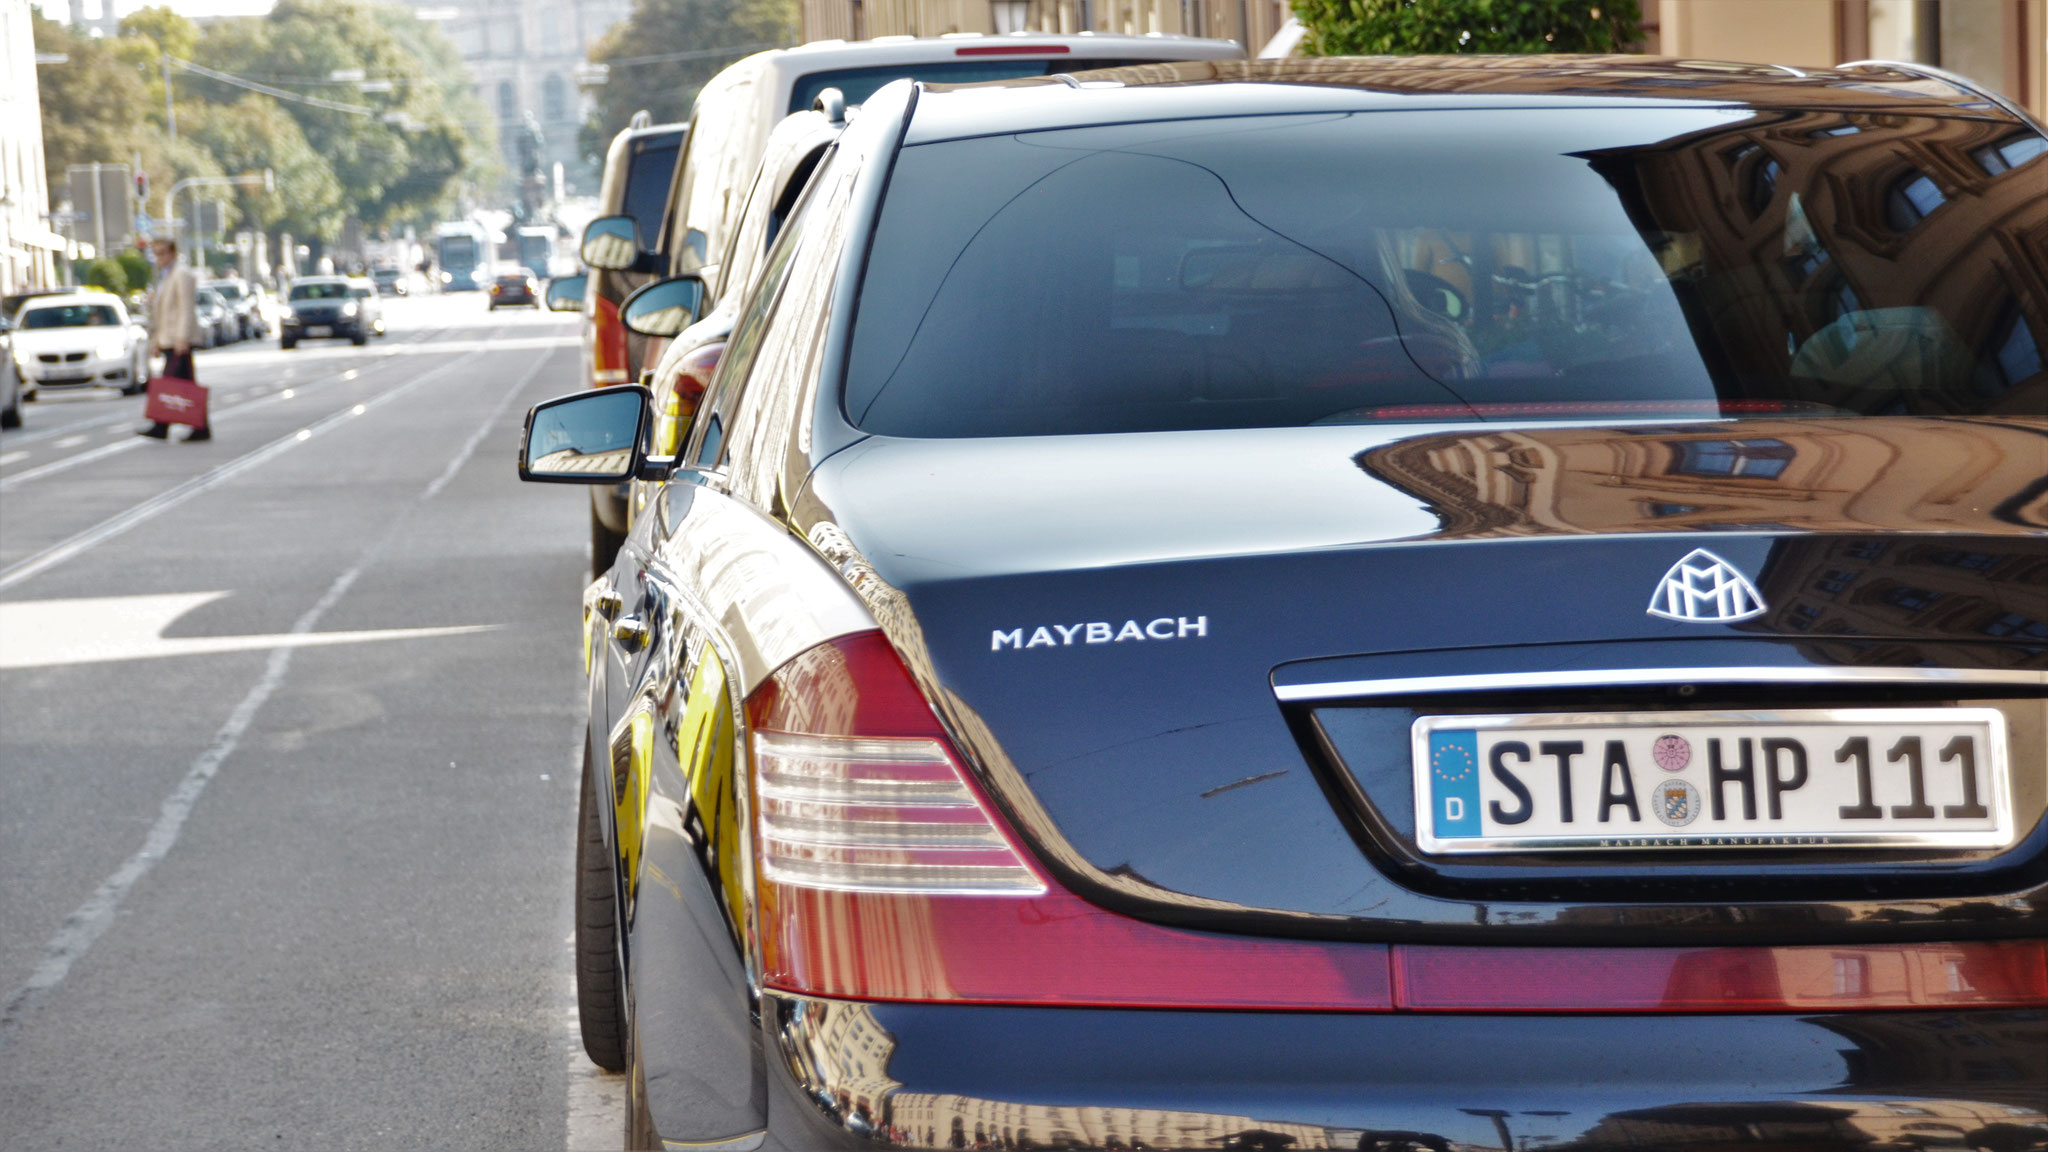 Maybach 57S - STA-HP-111